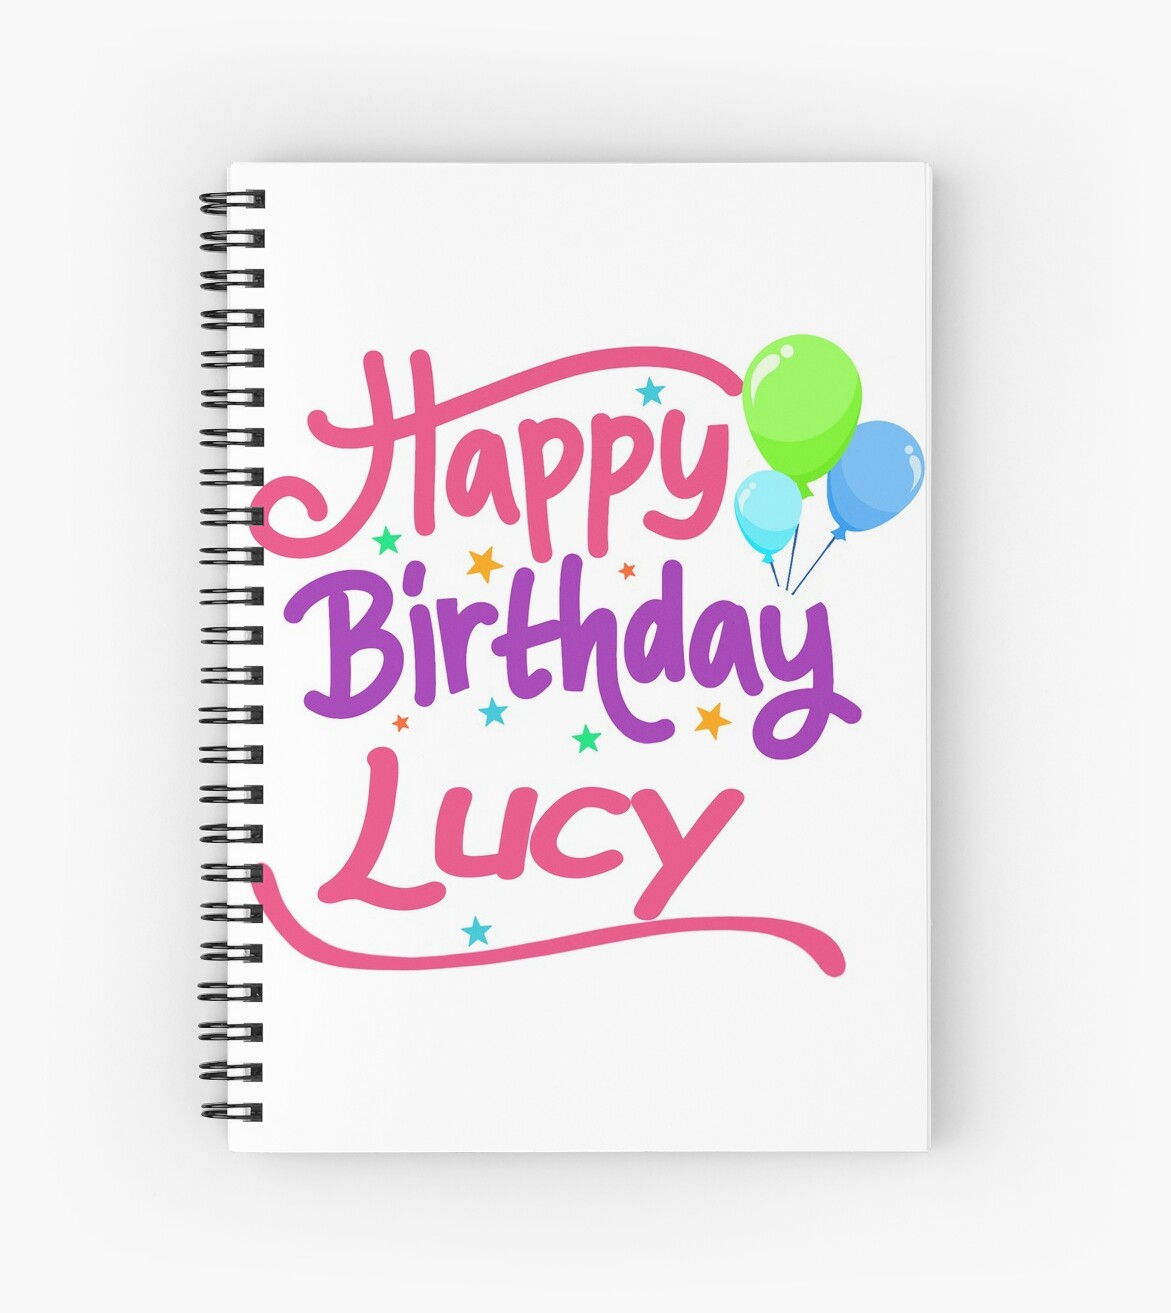 Happy Birthday Lucy Spiral Notebooks By Pm Names Redbubble